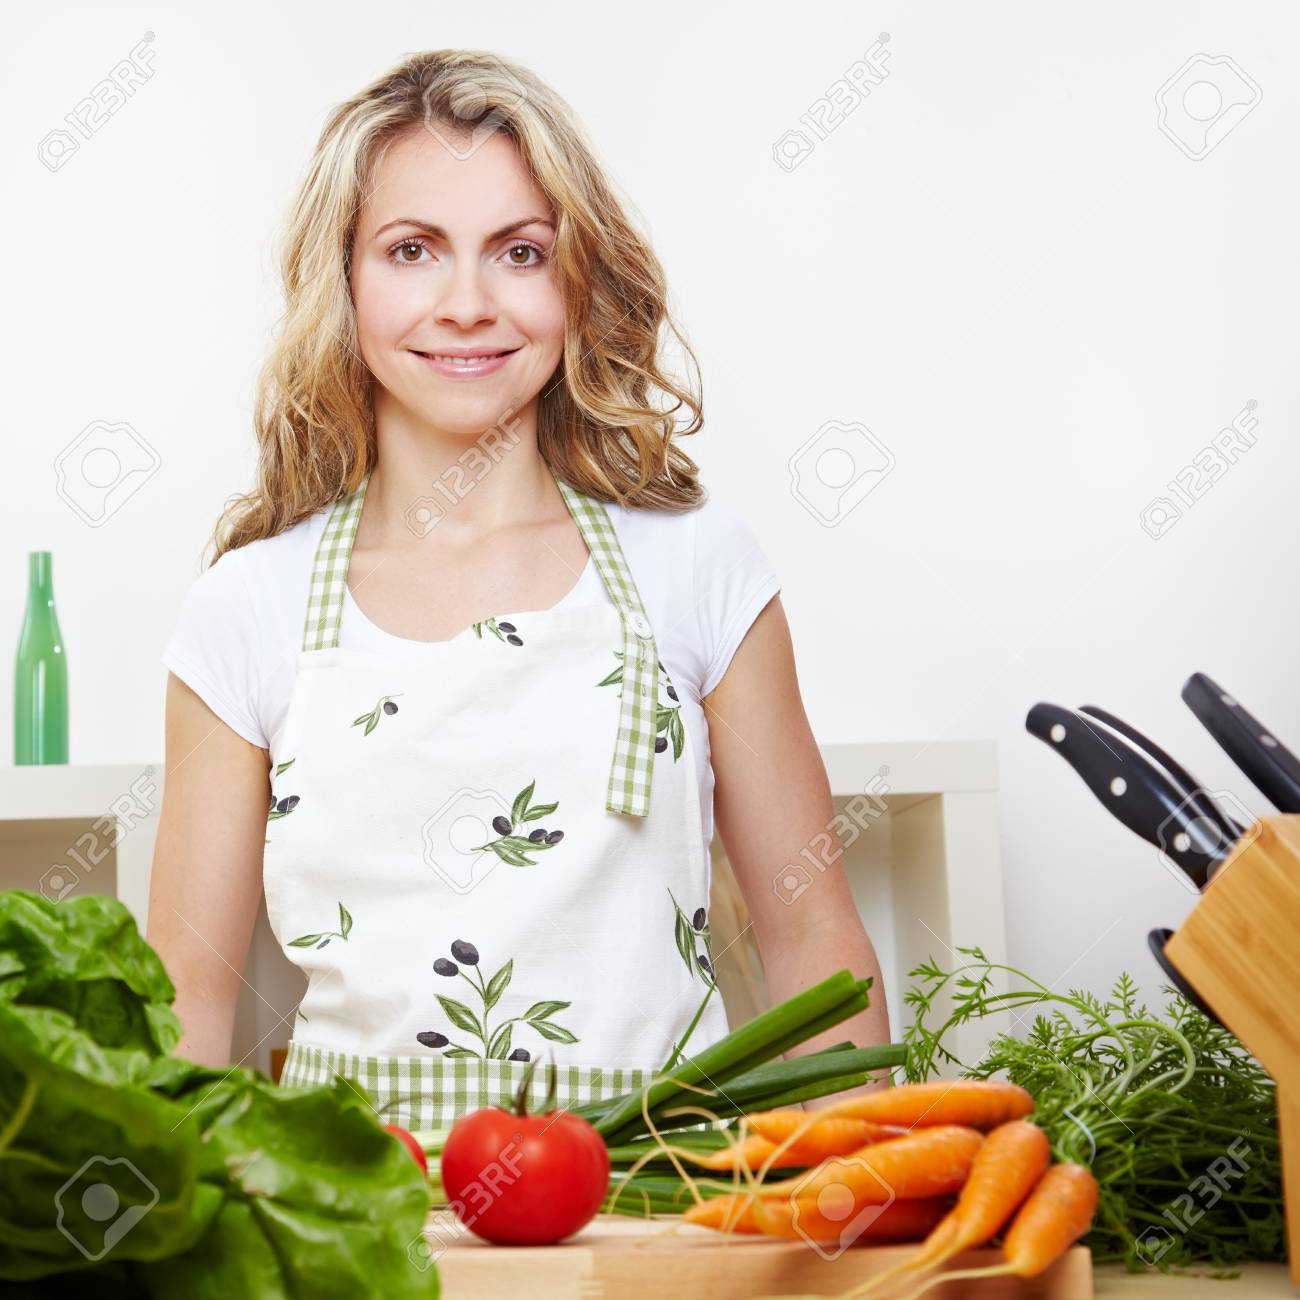 Attractive smiling woman standing in kitchen with vegetables behind chopping board Stock Photo - 14754697